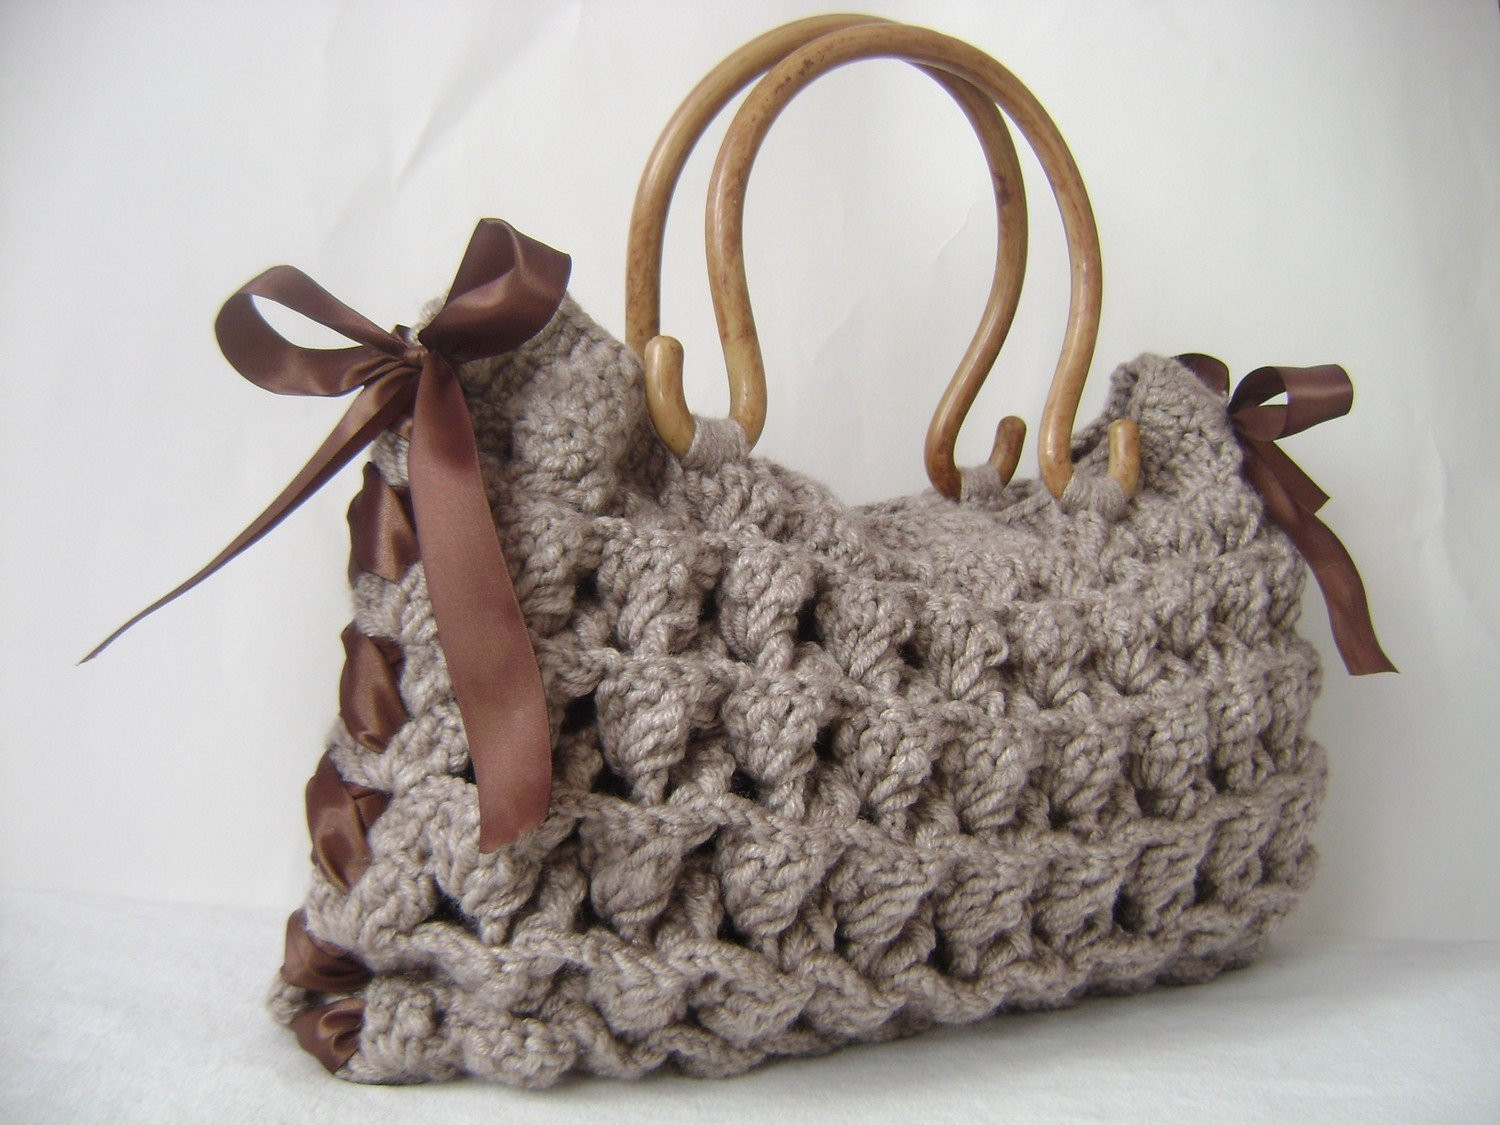 Fresh Mothers Day Happy Holidays Handmade Knit Bag Brown Celebrity Knitted Purse Of Amazing 41 Pics Knitted Purse